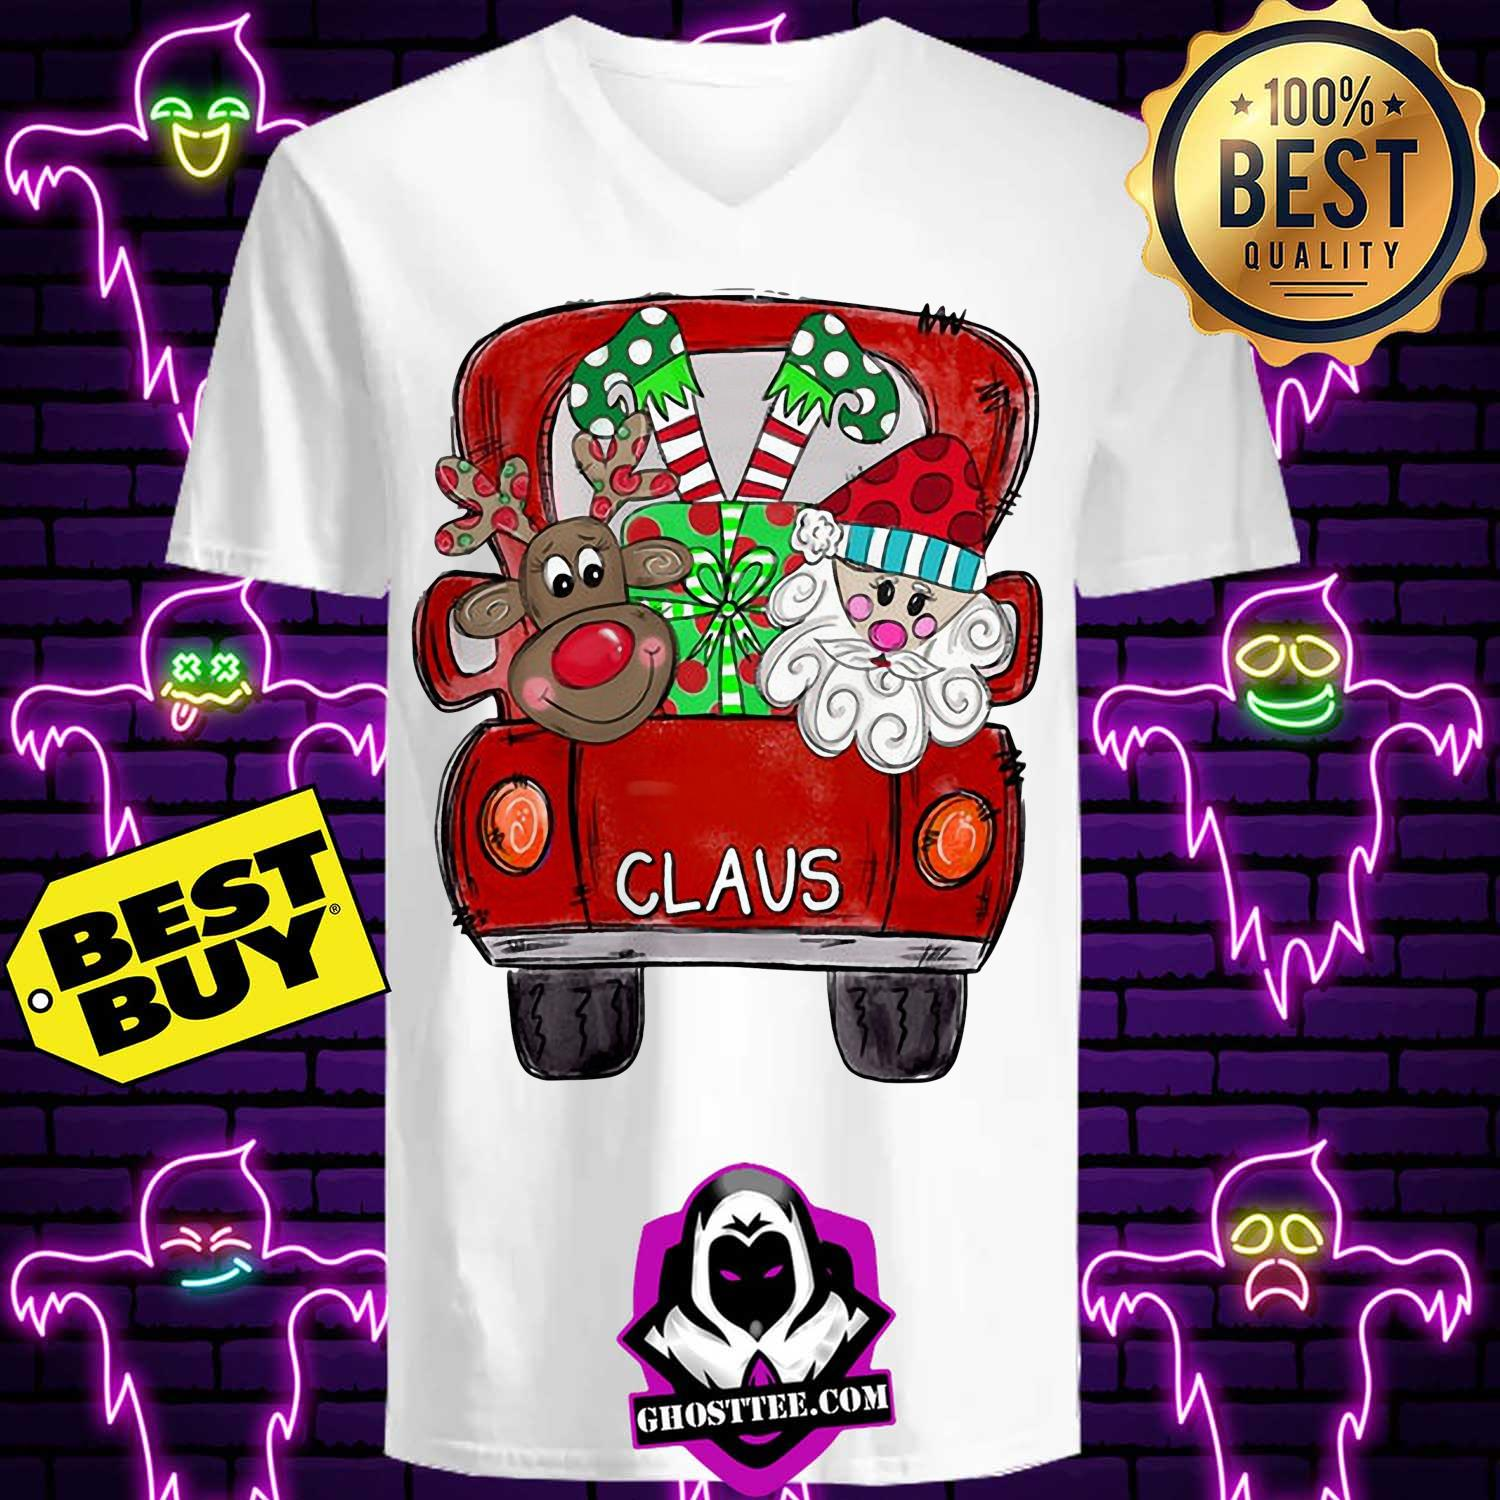 merry christmas with reindeer and santa claus on truck ladies tee - Merry Christmas With Reindeer And Santa Claus On Truck Shirt